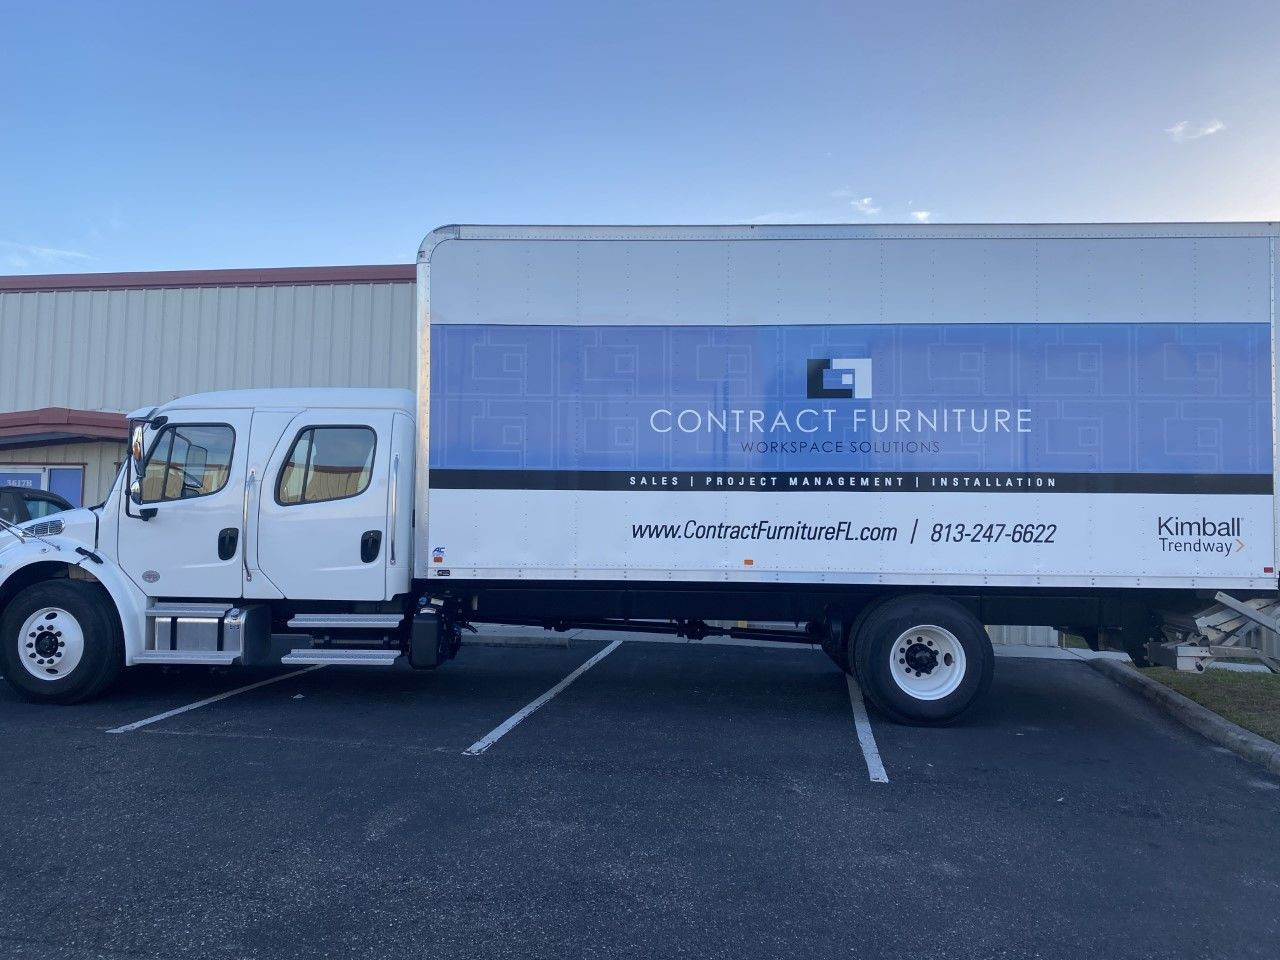 Full Vehicle Wraps | Vehicle Decals & Lettering | Service & Trade Organizations | Tampa